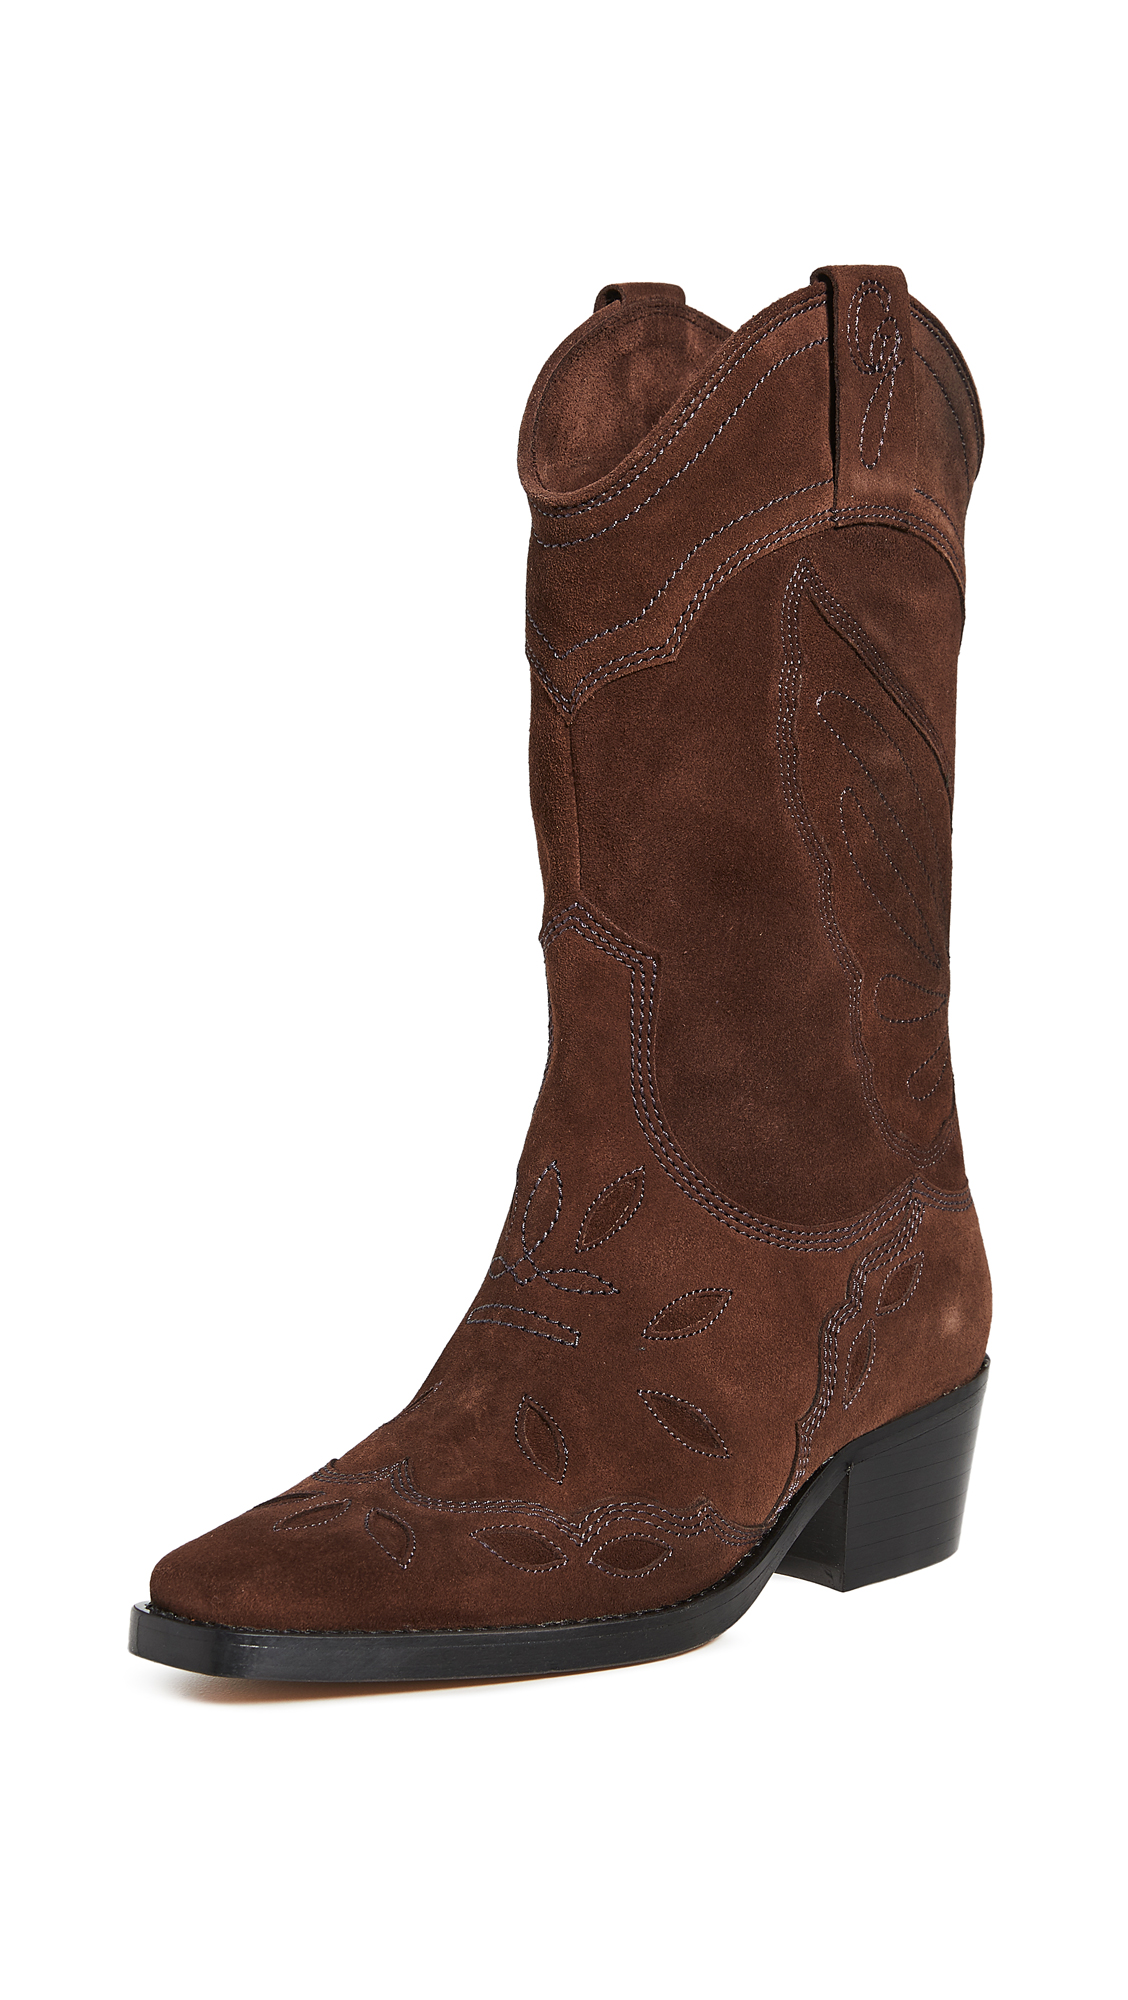 GANNI High Western Boots – 40% Off Sale